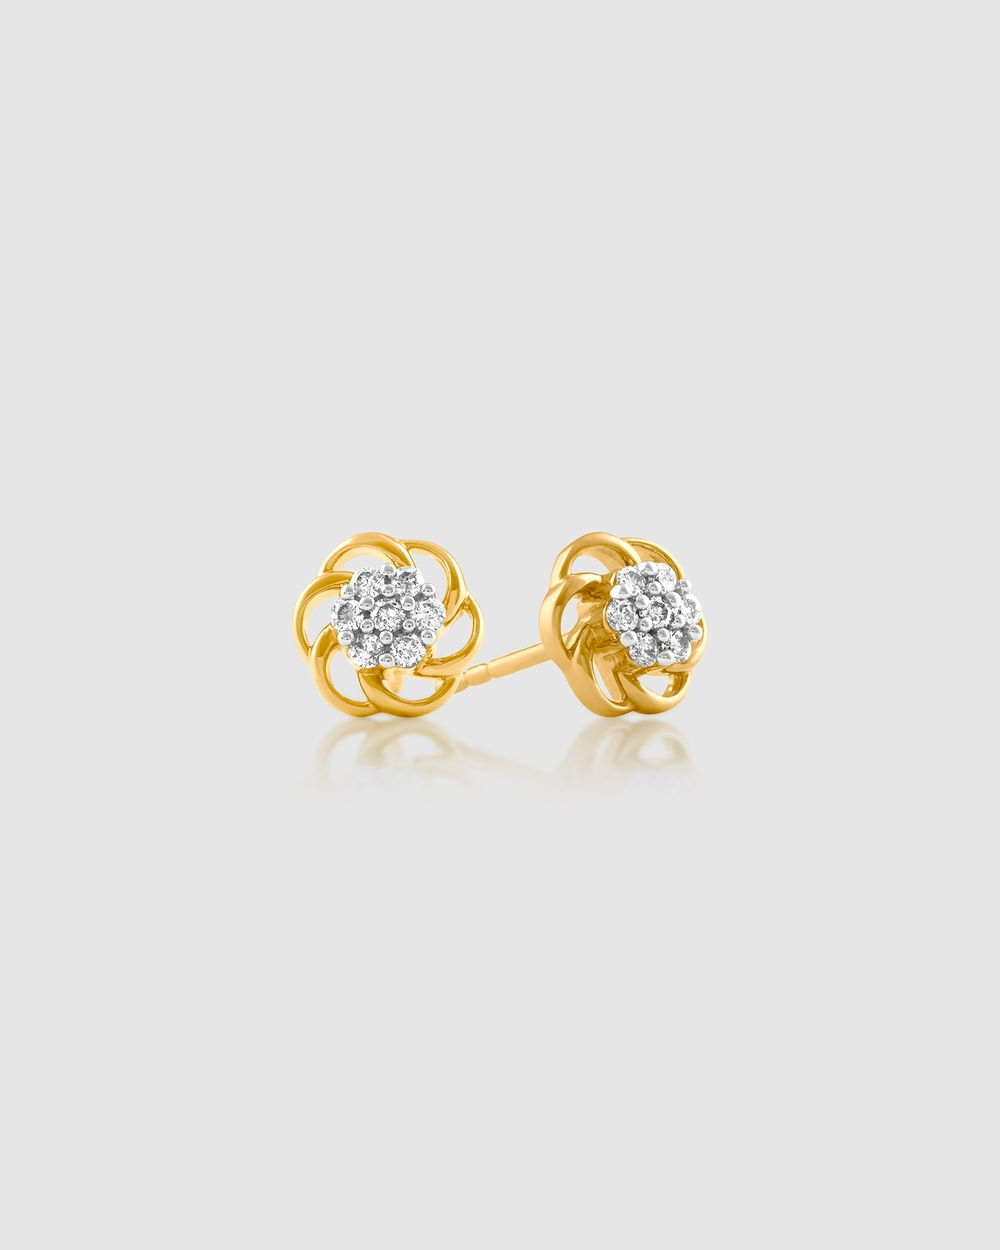 Michael Hill 0.10ct Flower Stud Earrings with Diamonds in 10ct Yellow Gold Jewellery Yellow